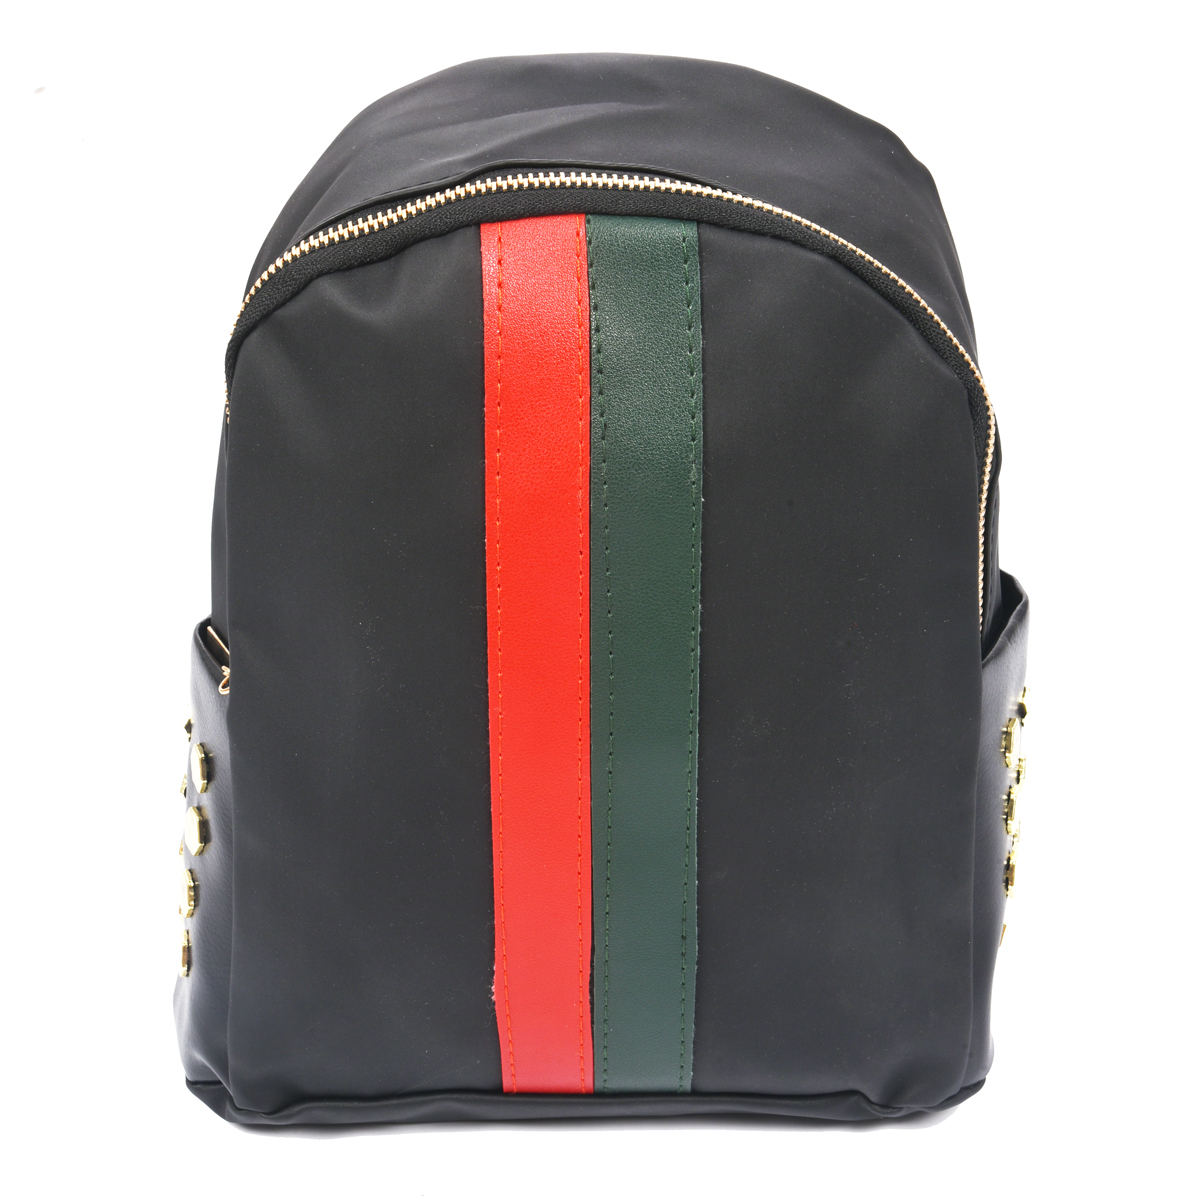 Womens bags Fashion Waterproof Backpack College Schoolbag Computer Bag Female Casual Travel Bag Laptop Black BackpackWomens bags Fashion Waterproof Backpack College Schoolbag Computer Bag Female Casual Travel Bag Laptop Black Backpack